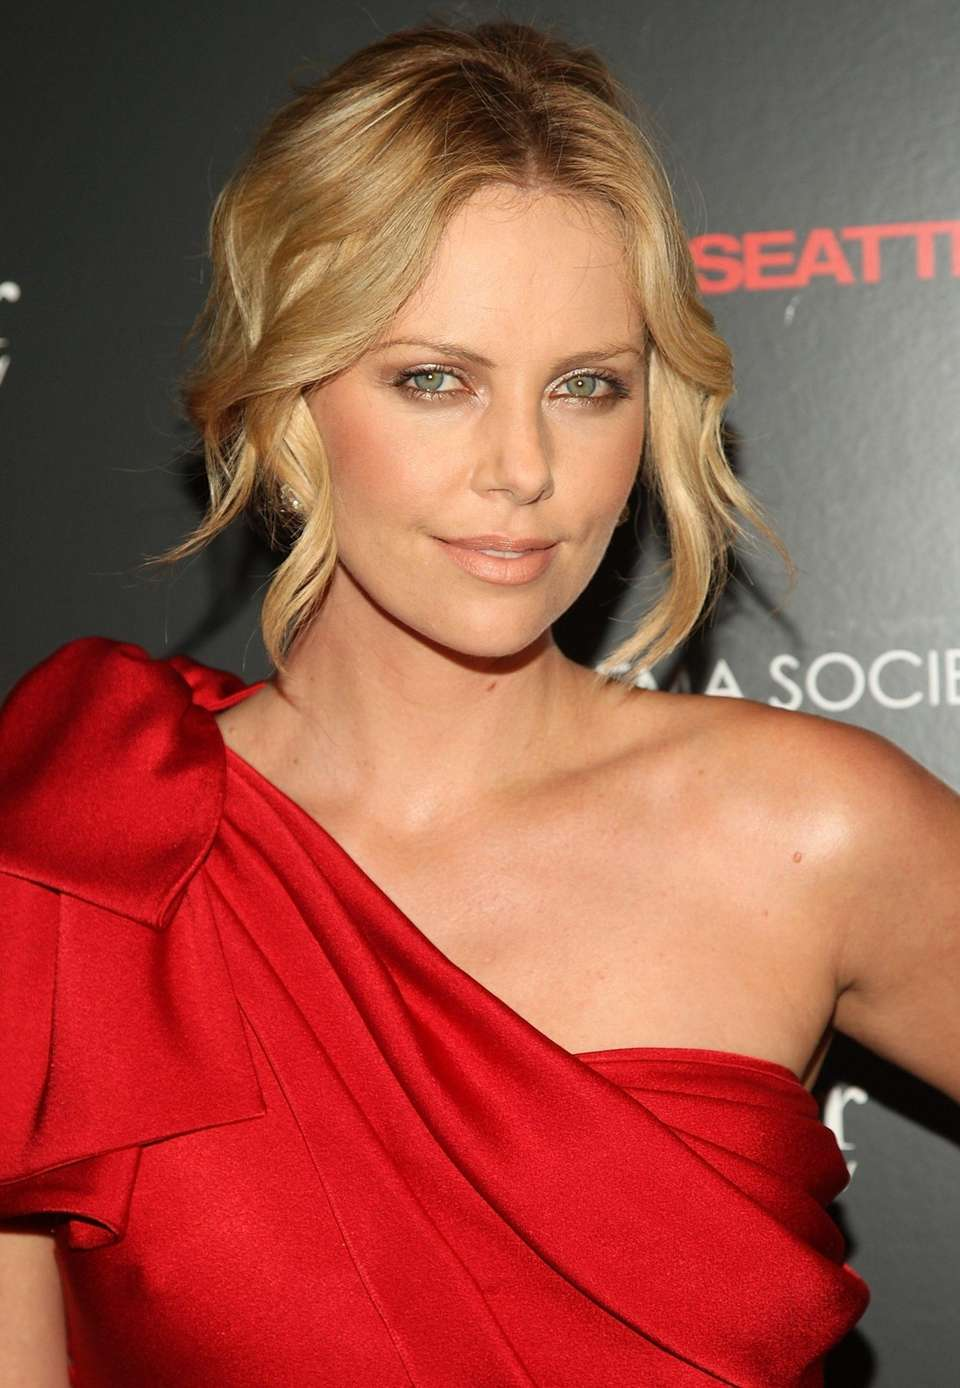 Charlize Theron attends a screening of